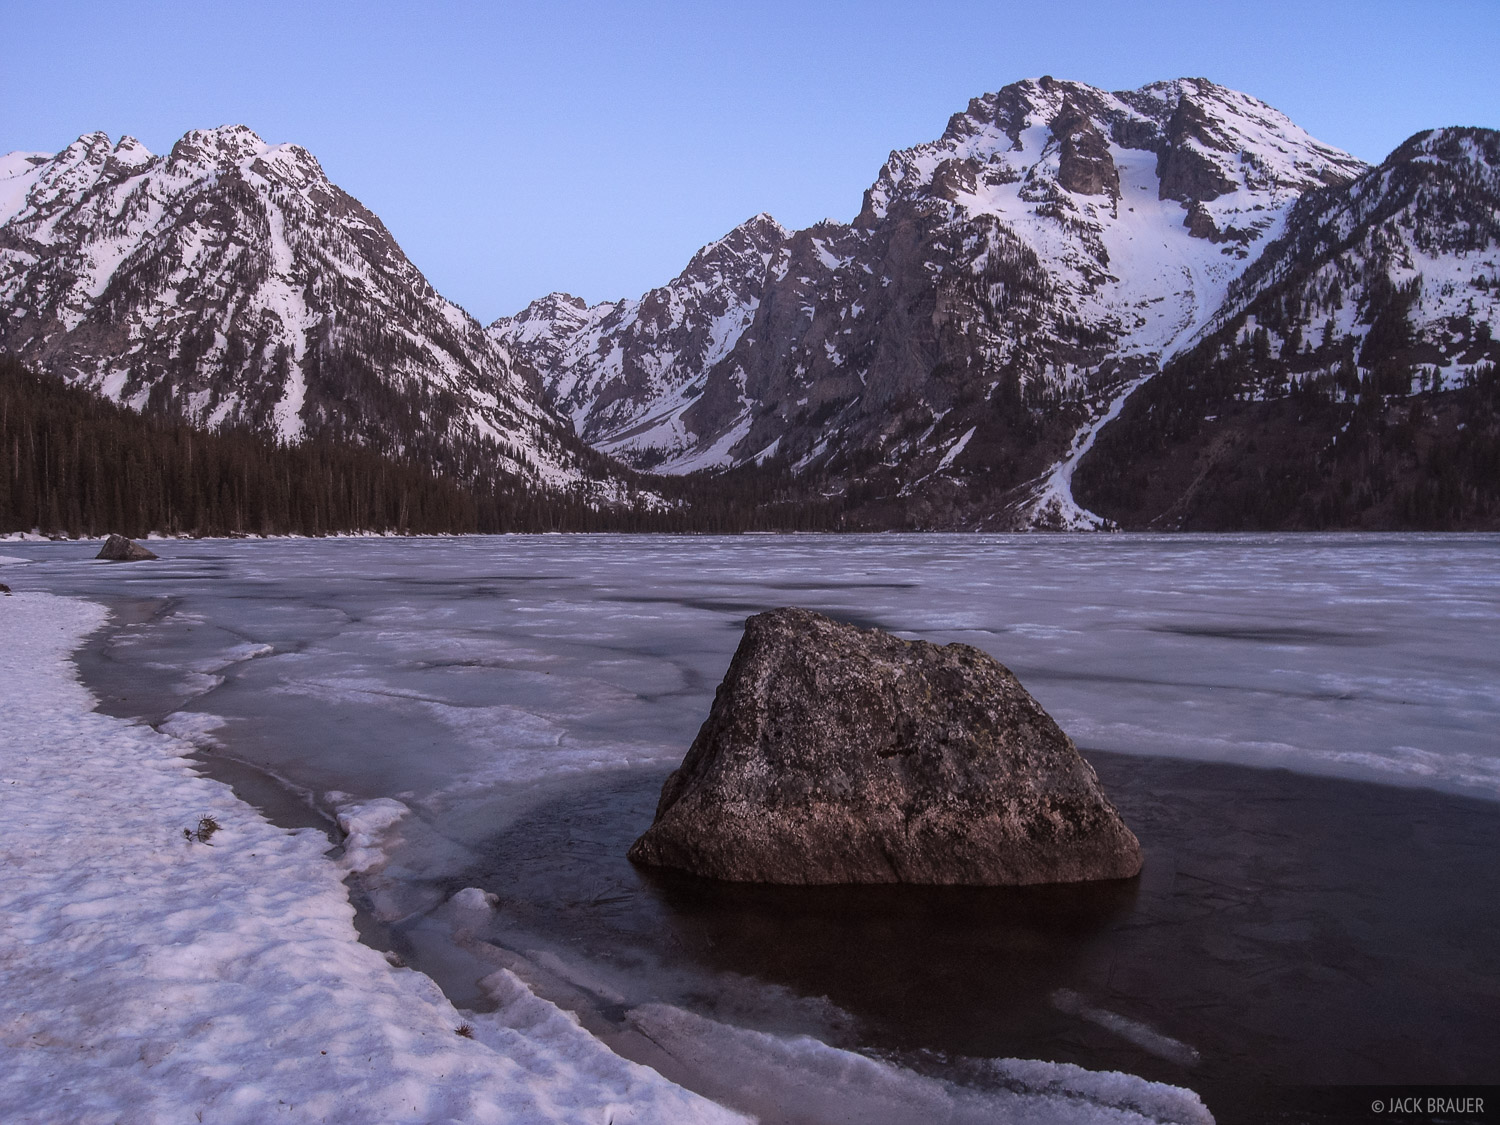 Dawn light on the shores of partially frozen Leigh Lake, looking towards the rugged peaks of Leigh Canyon.